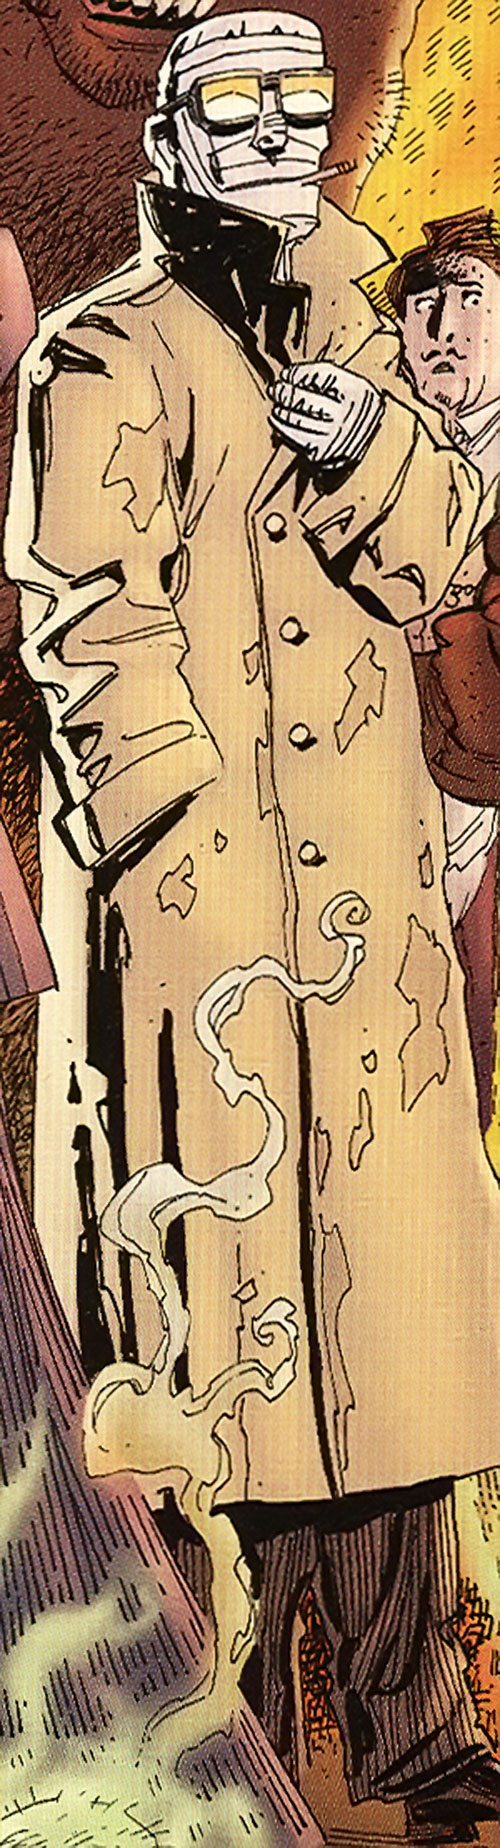 The Invisible Man (League of Extraordinary Gentlemen) with bandages and a coat